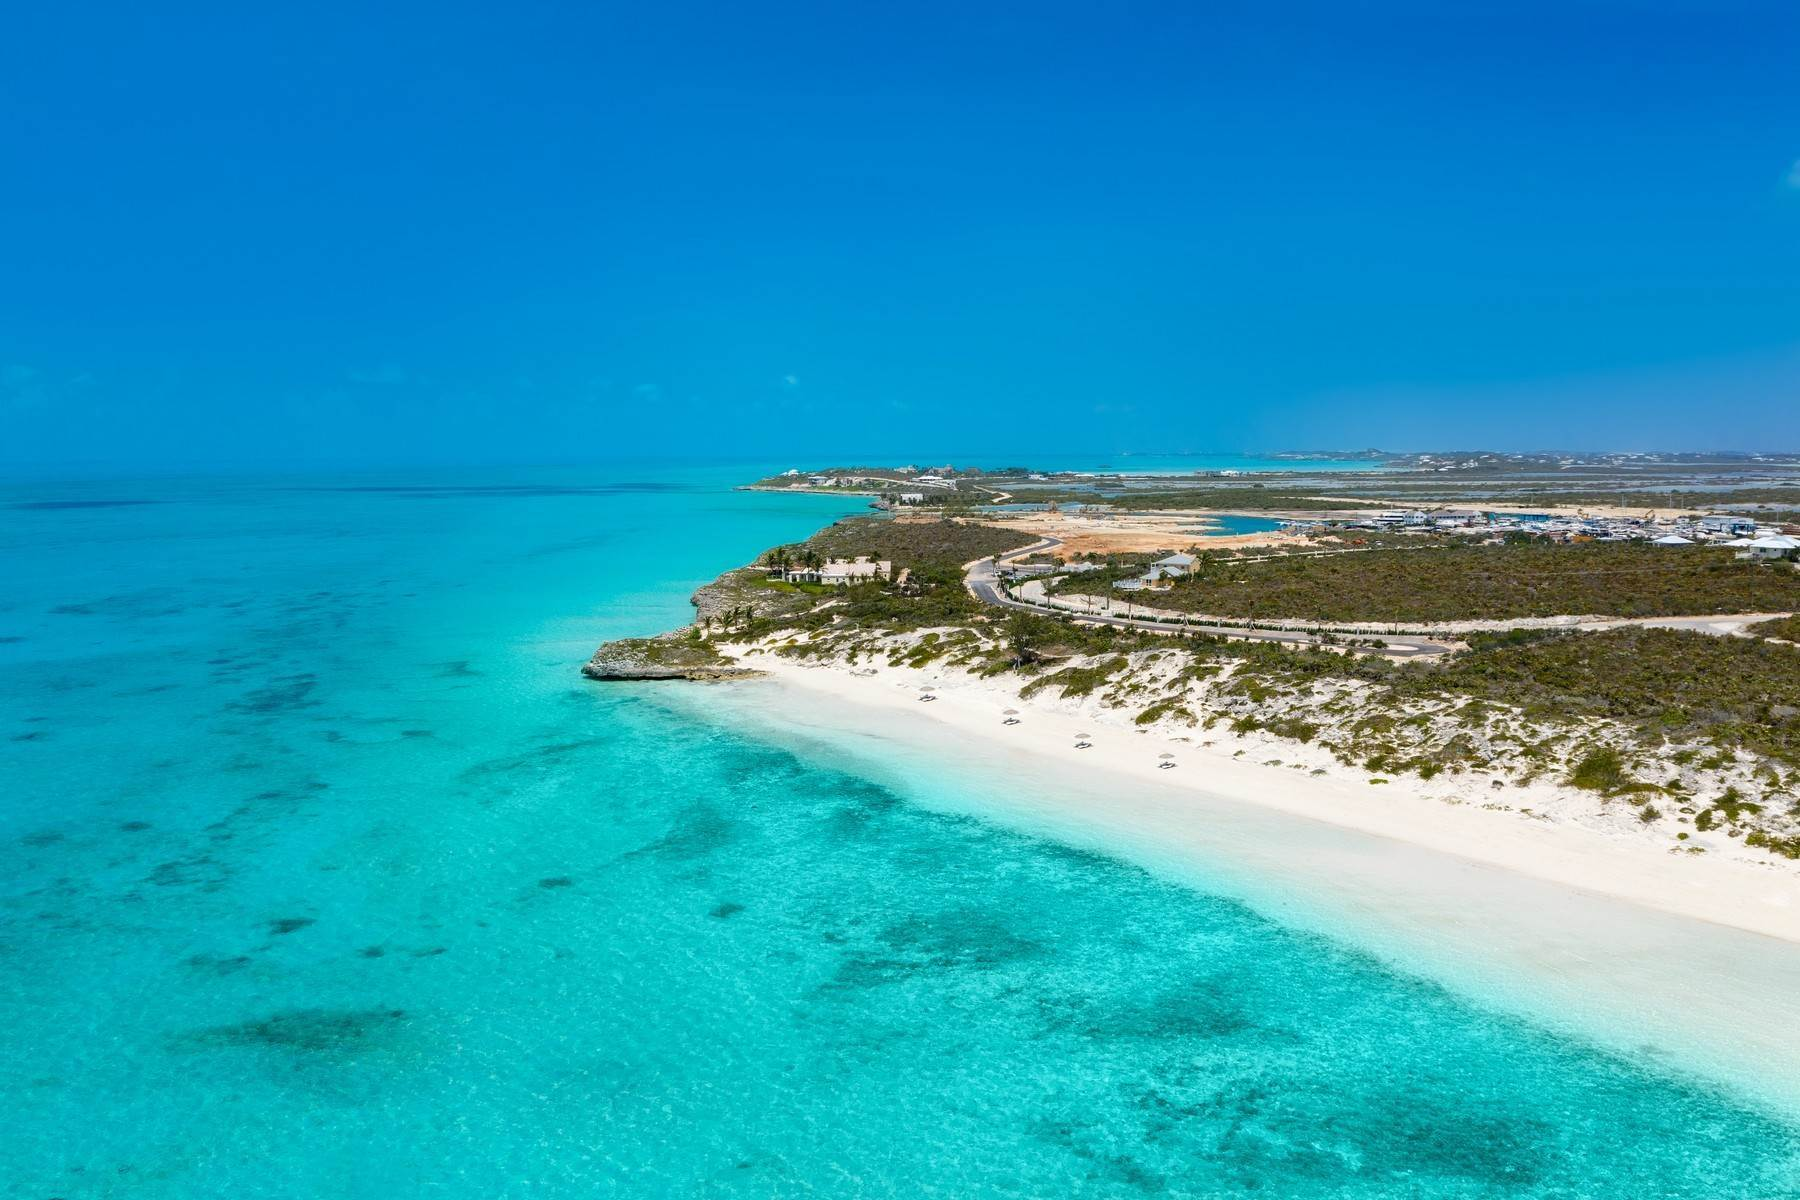 10. Single Family Homes for Sale at SOUTH BANK - THE OCEAN ESTATE II - REEF VILLA - VILLA 19 South Bank, Long Bay, Providenciales Turks And Caicos Islands